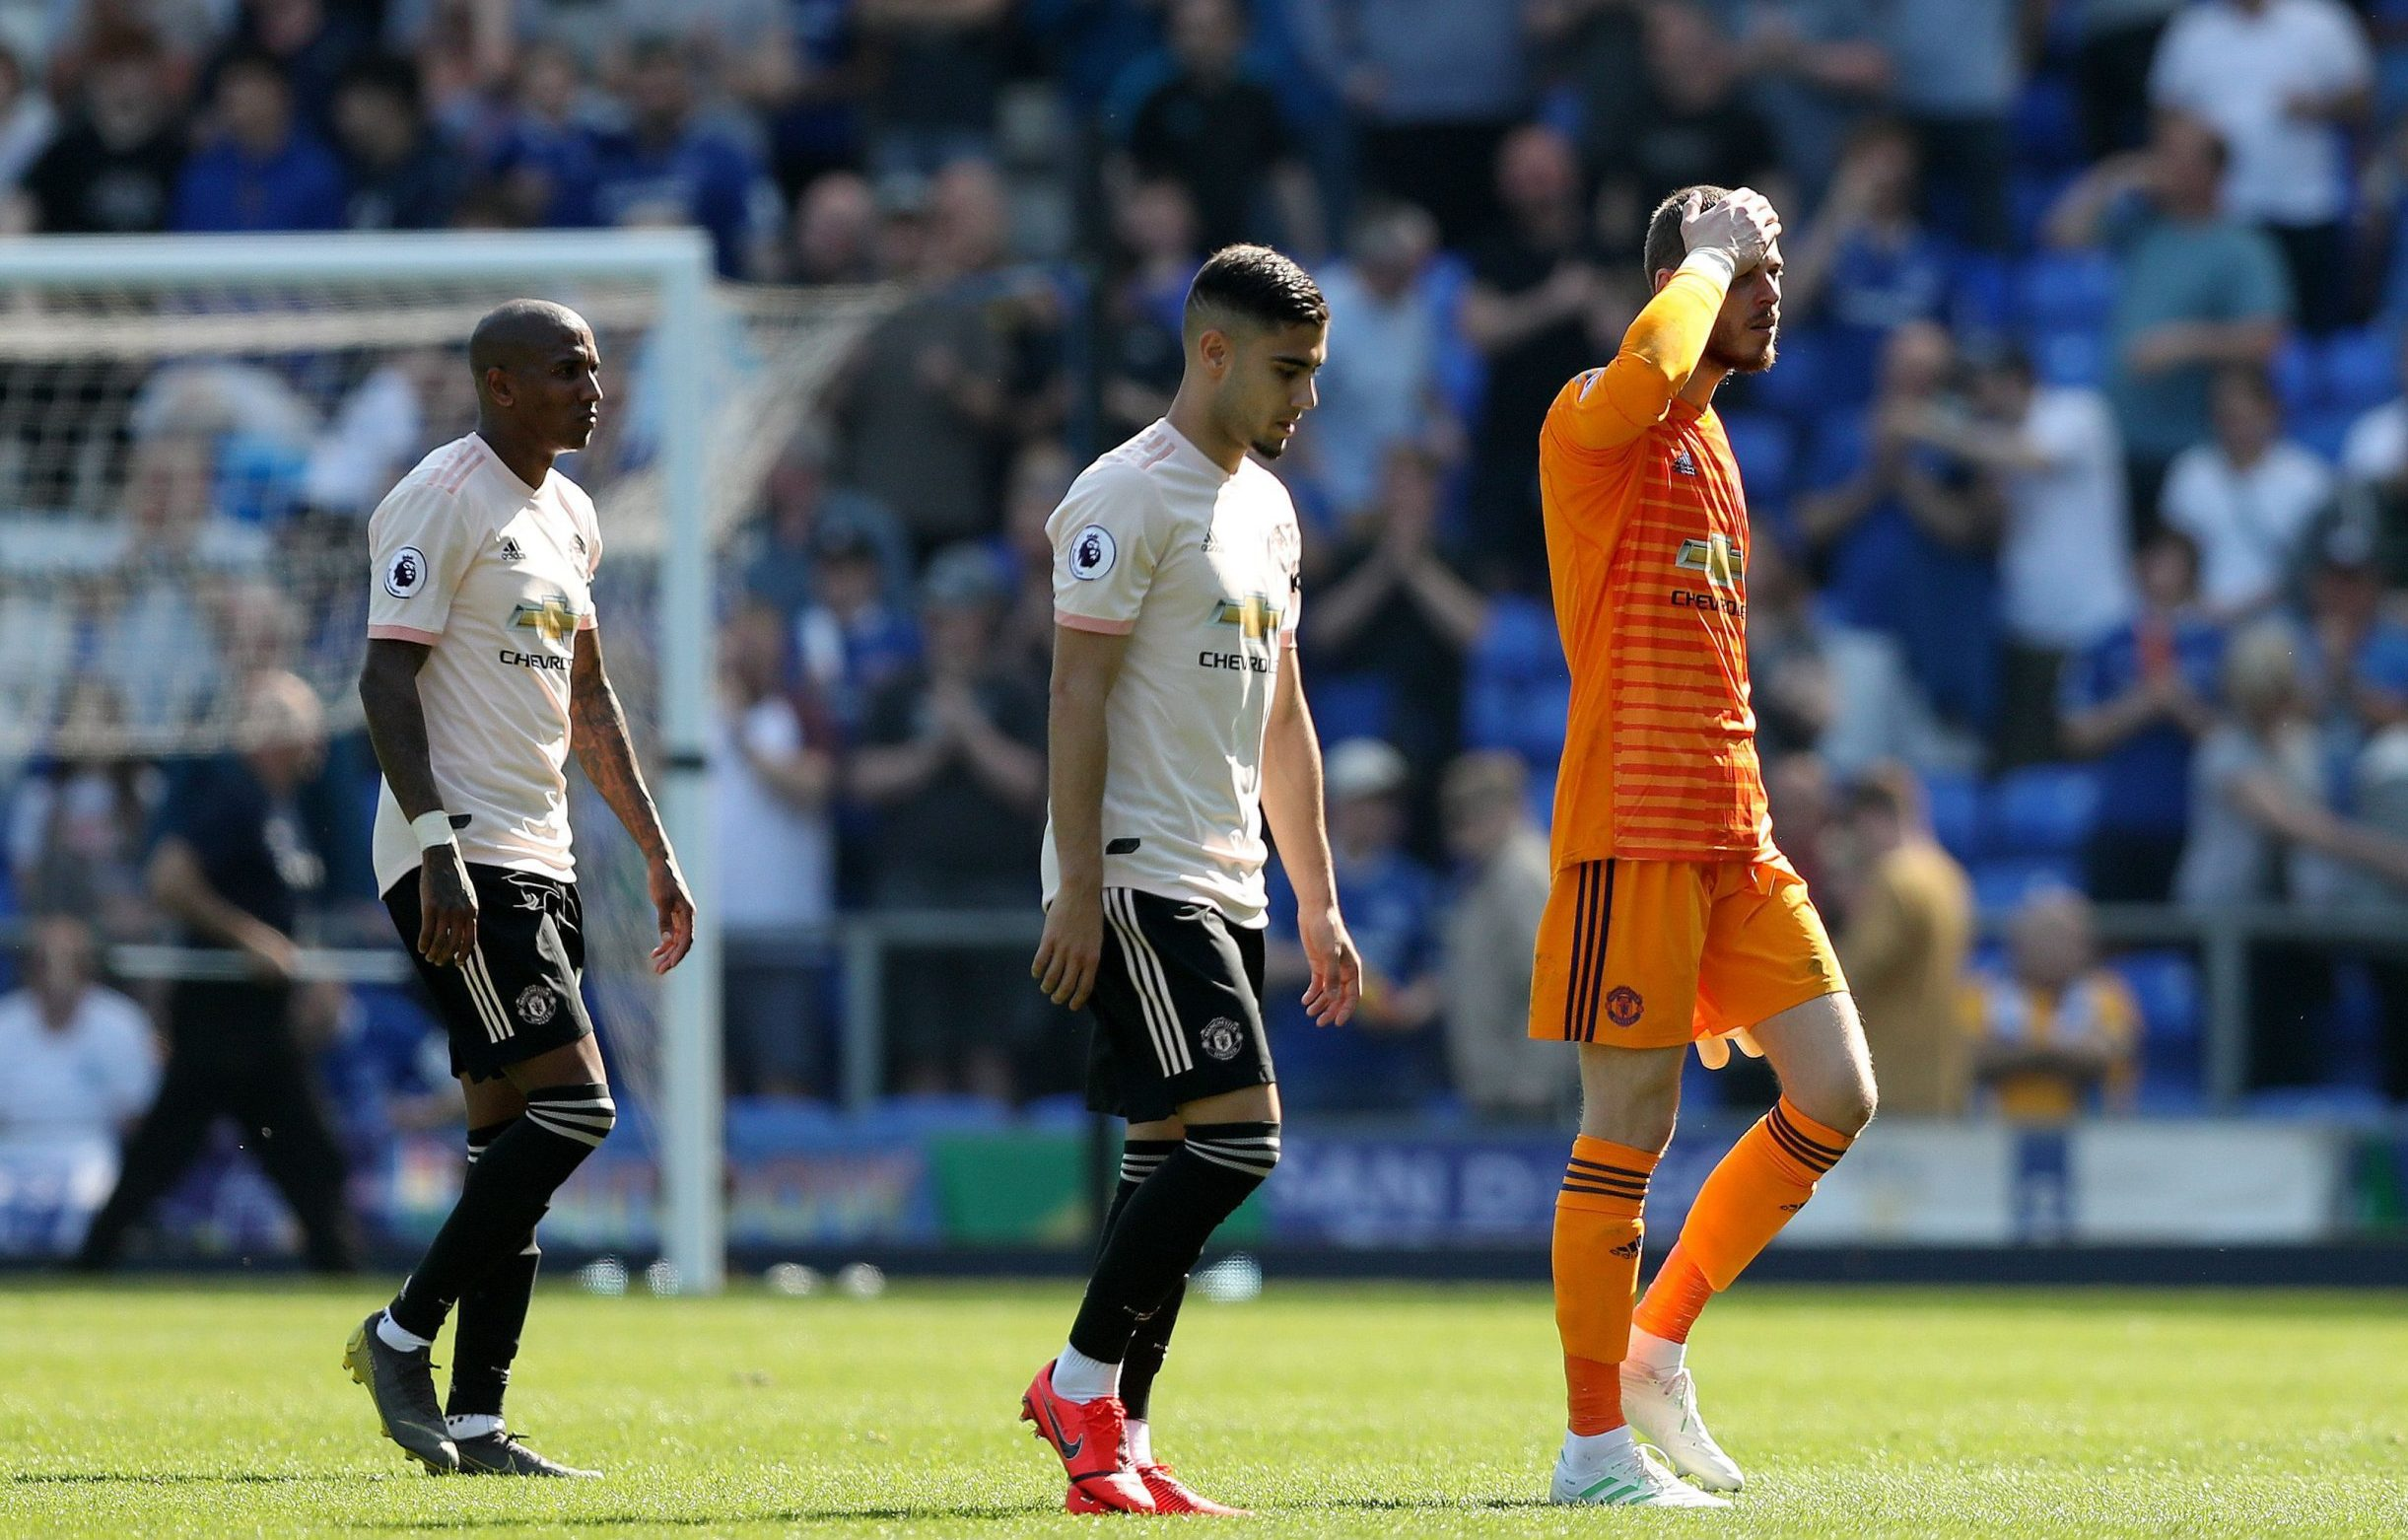 Manchester United goalkeeper David De Gea shows a look of dejection as he leaves the pitch at full time Everton v Manchester United, Premier League Football, Goodison Park, Liverpool, UK - 21 Apr 2019